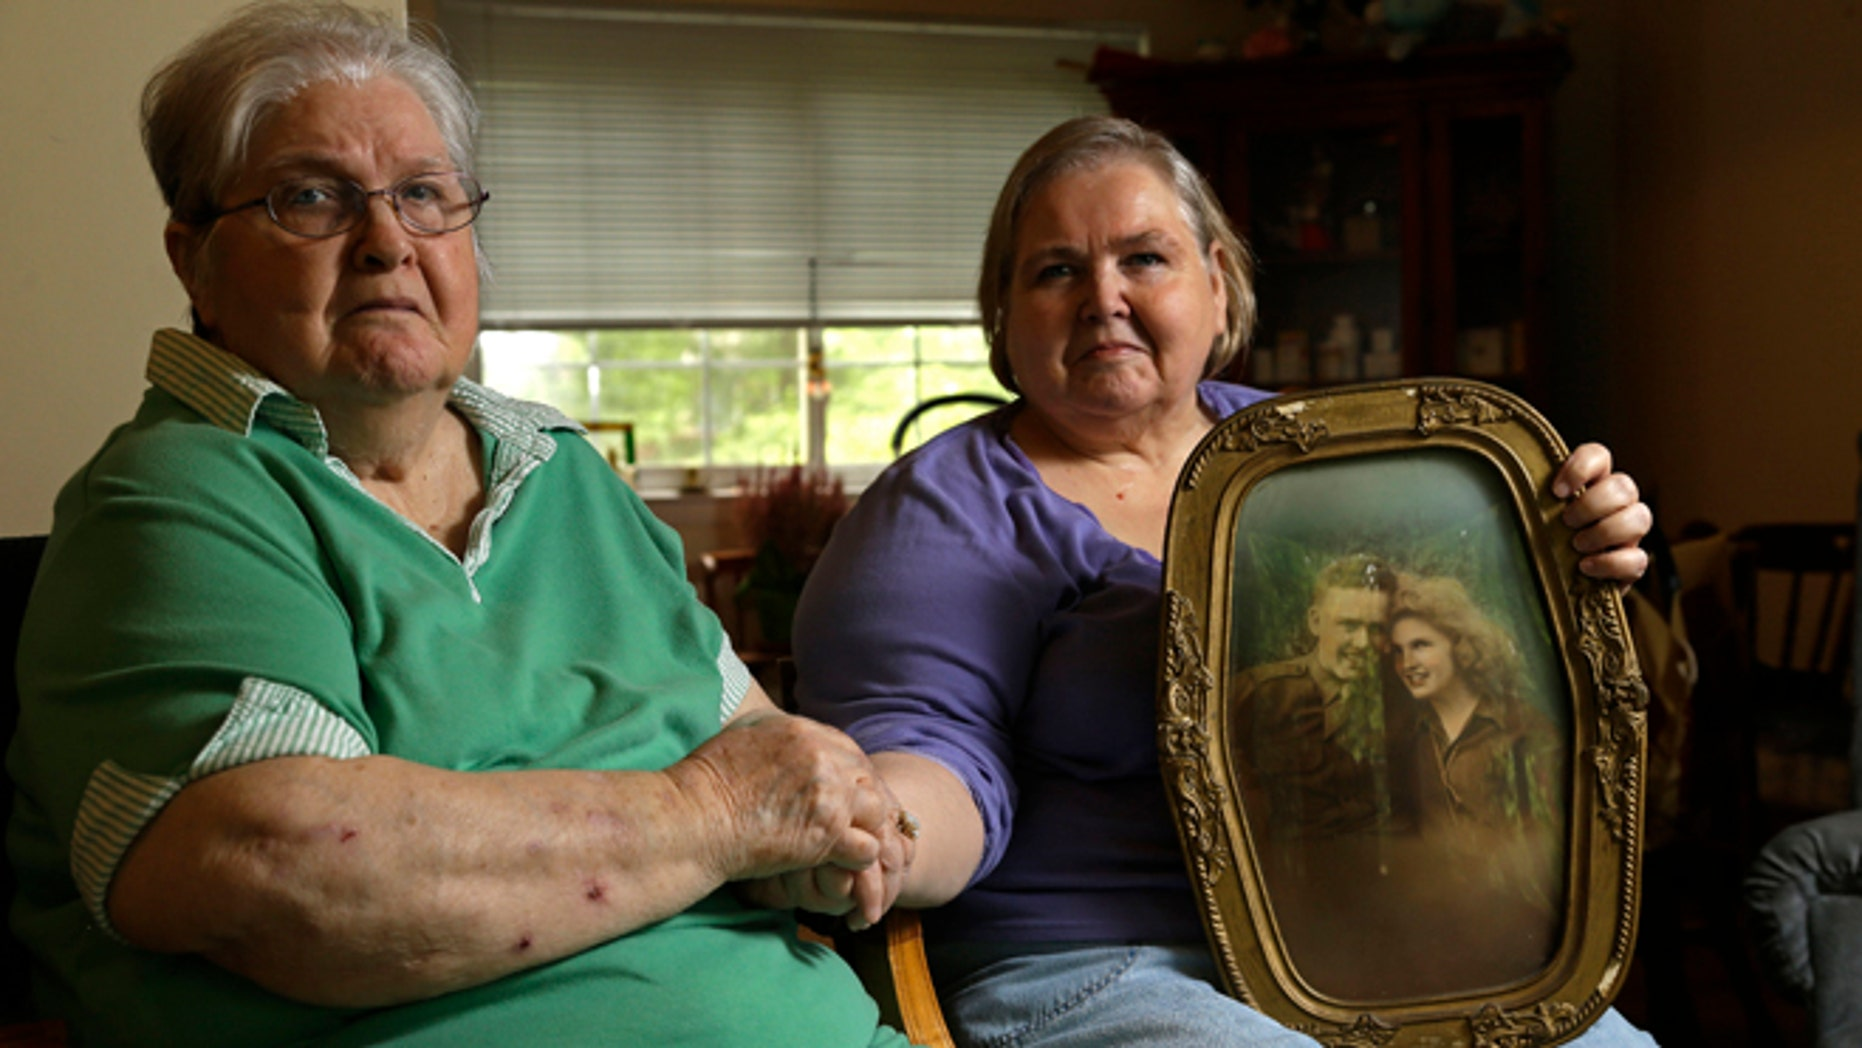 In this photo taken Monday, July 1, 2013 in Chapel Hill, N.C., Shelia Reese, right, sits with her mother Chris Tench holding a portrait of Tench and her father Kenneth F. Reese, a soldier who is still Missing In Action from the Korean War. Tench, who was later remarried, has never known what happened to her husband.